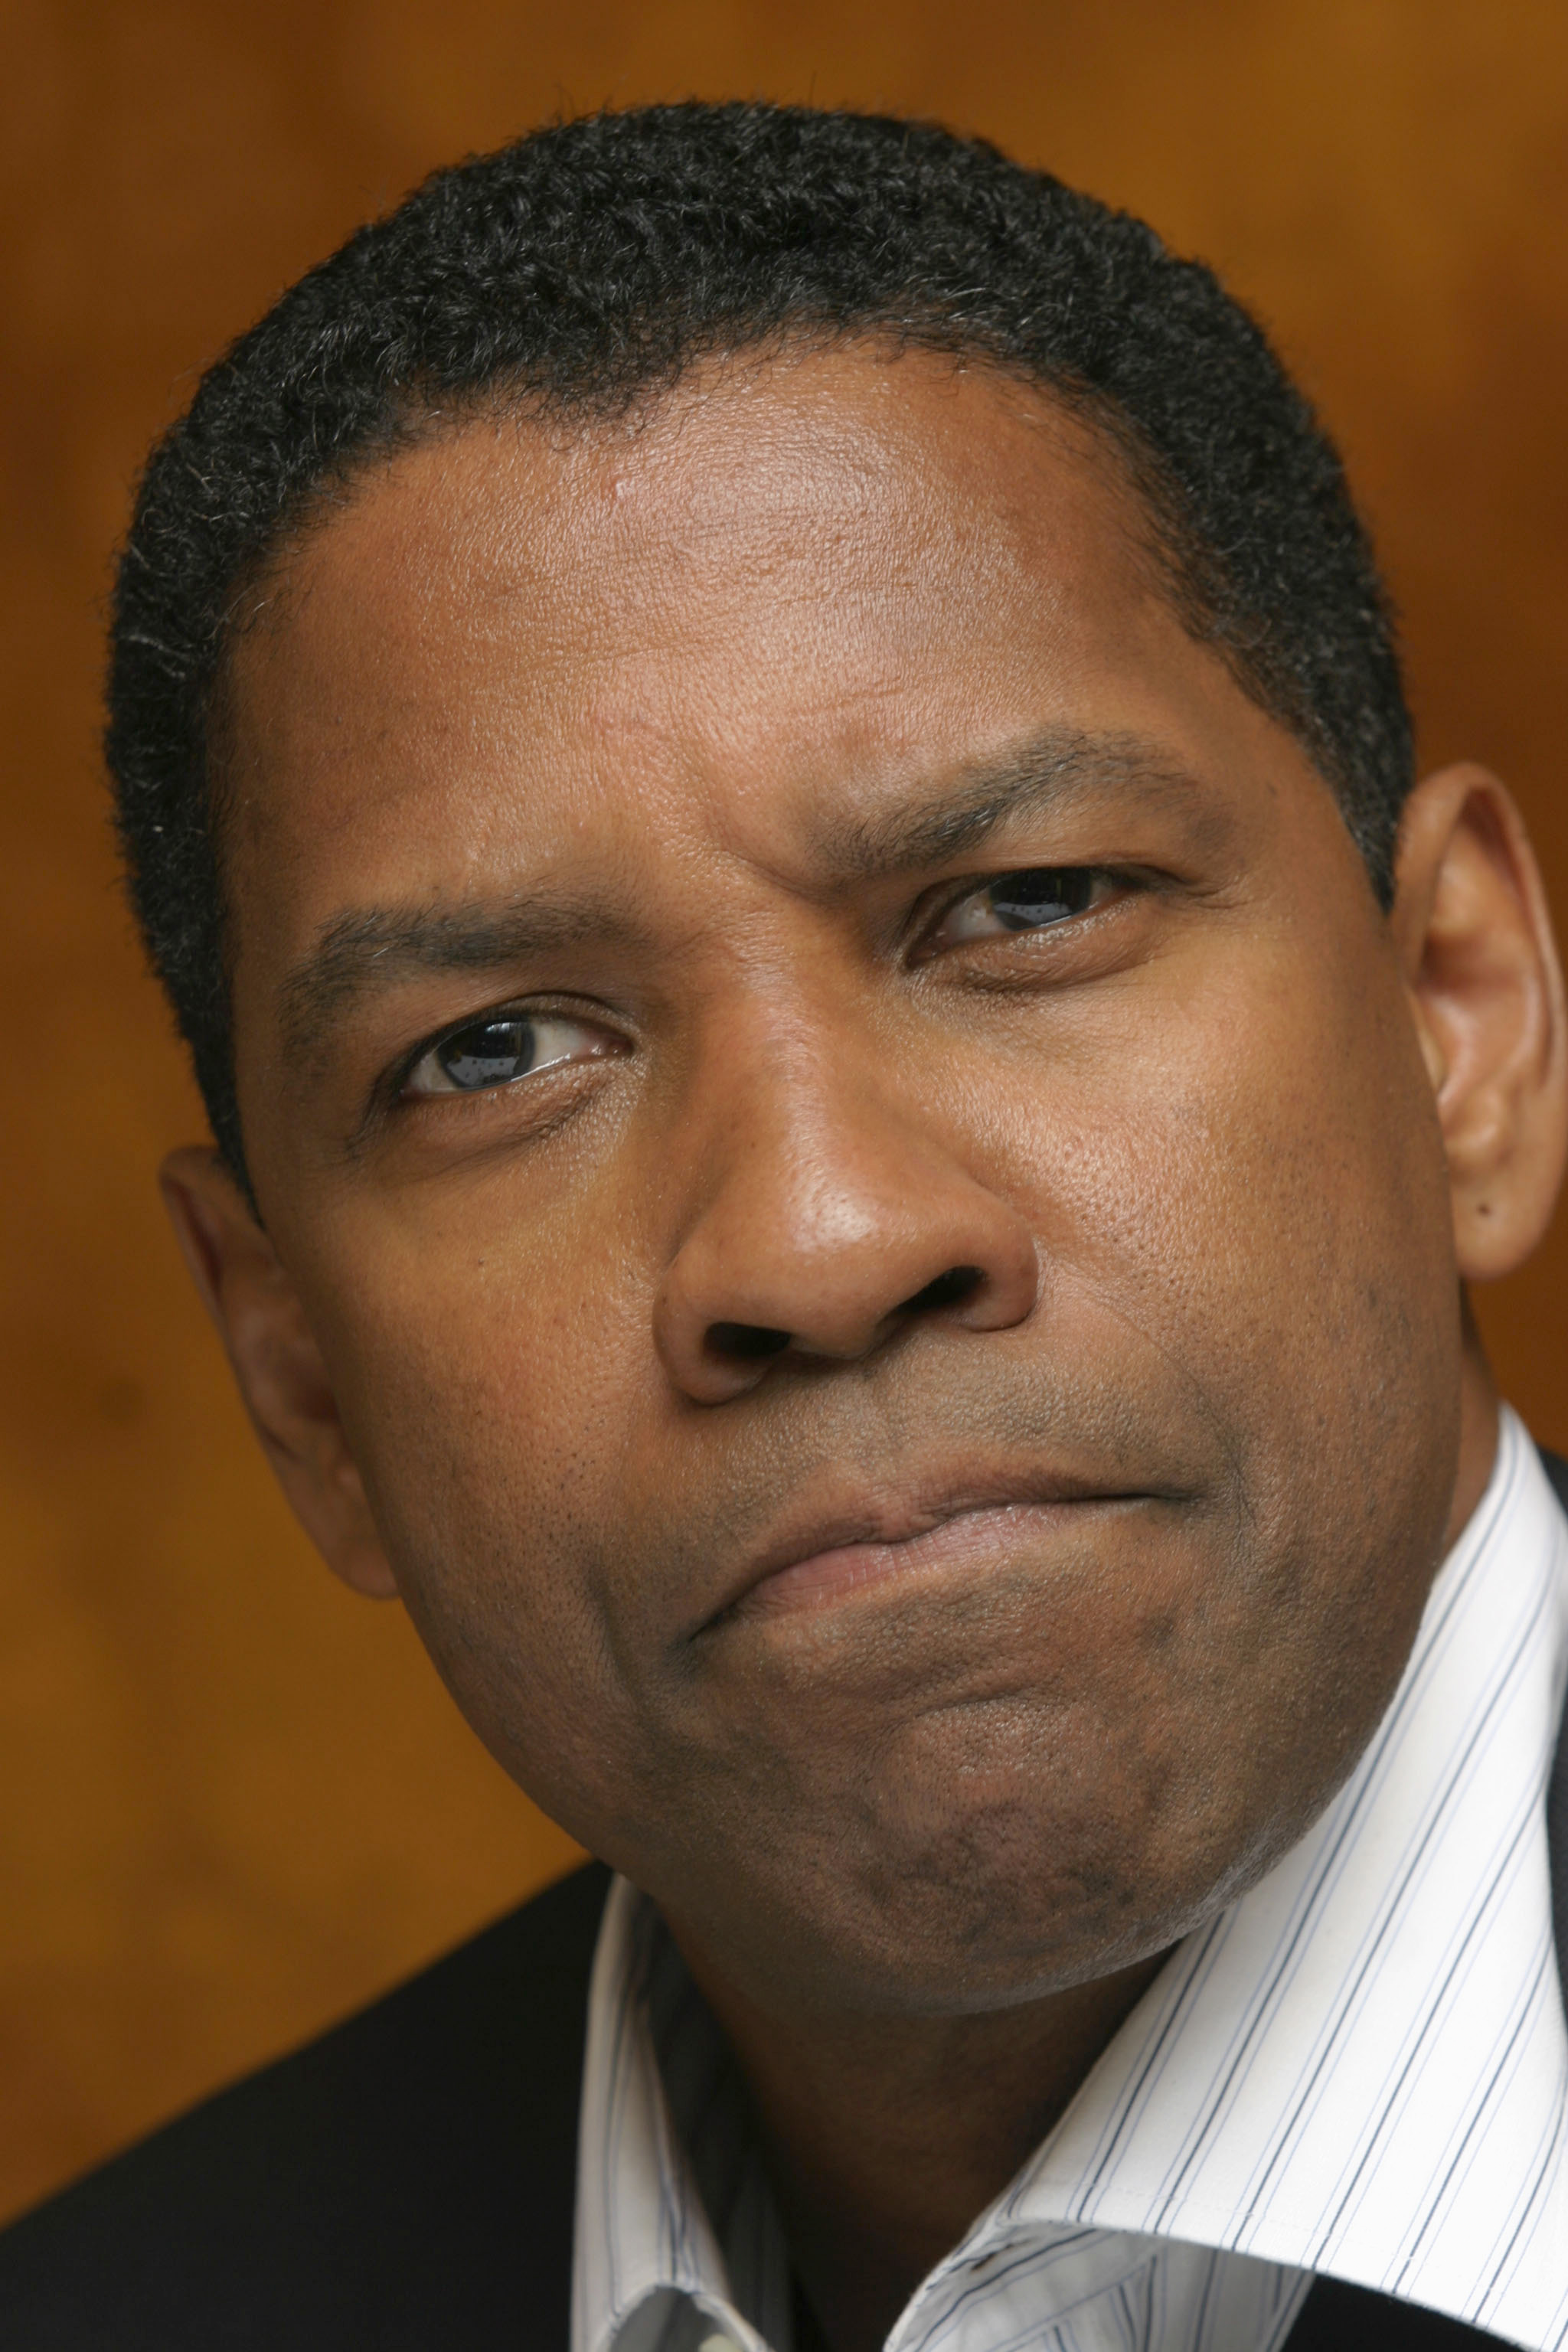 Резултат с изображение за denzel washington images